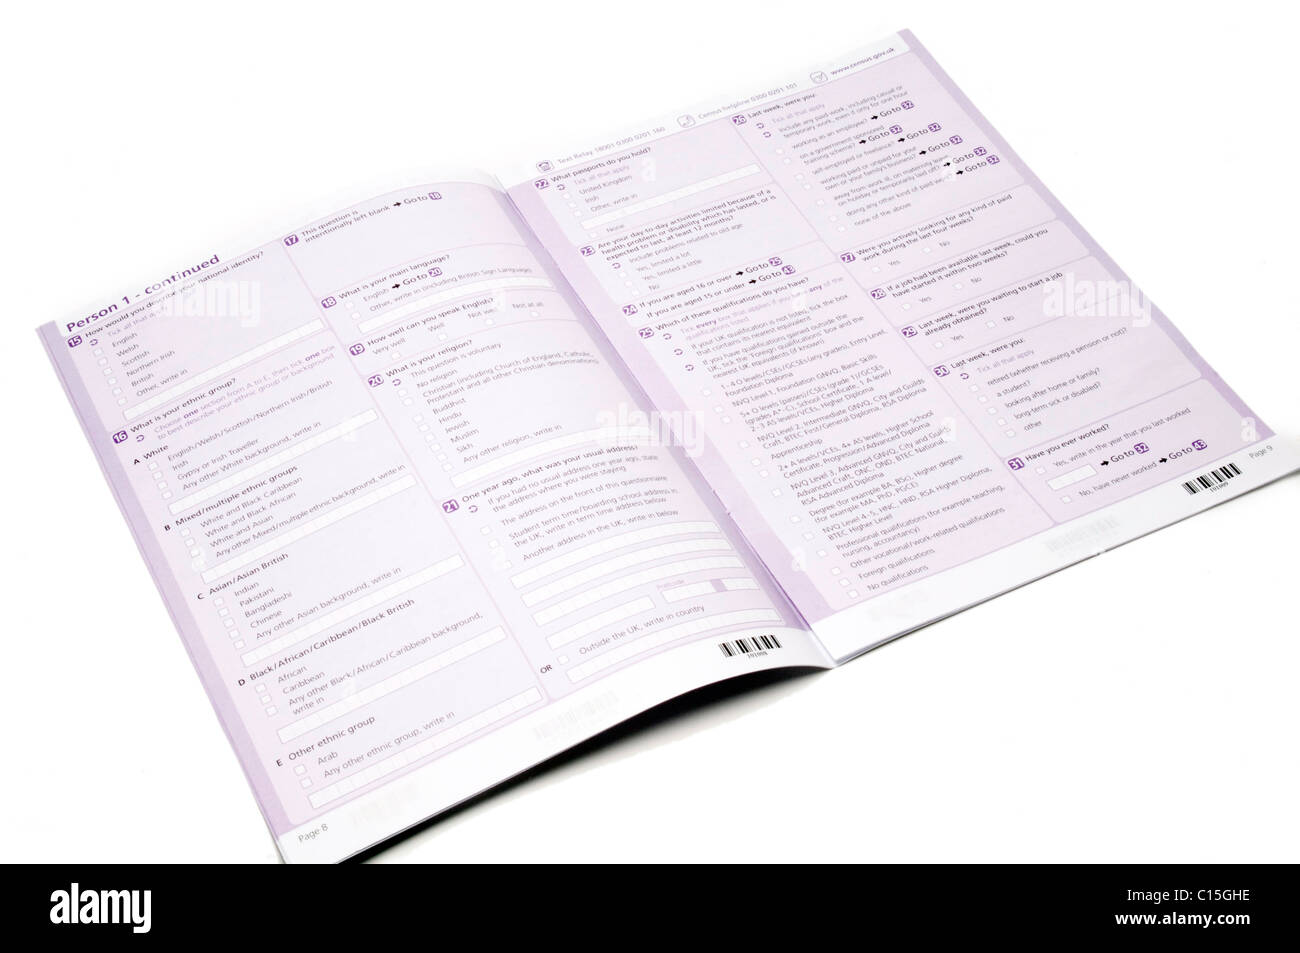 census national office for statistics form forms filling in pen details information data statistics government survey - Stock Image